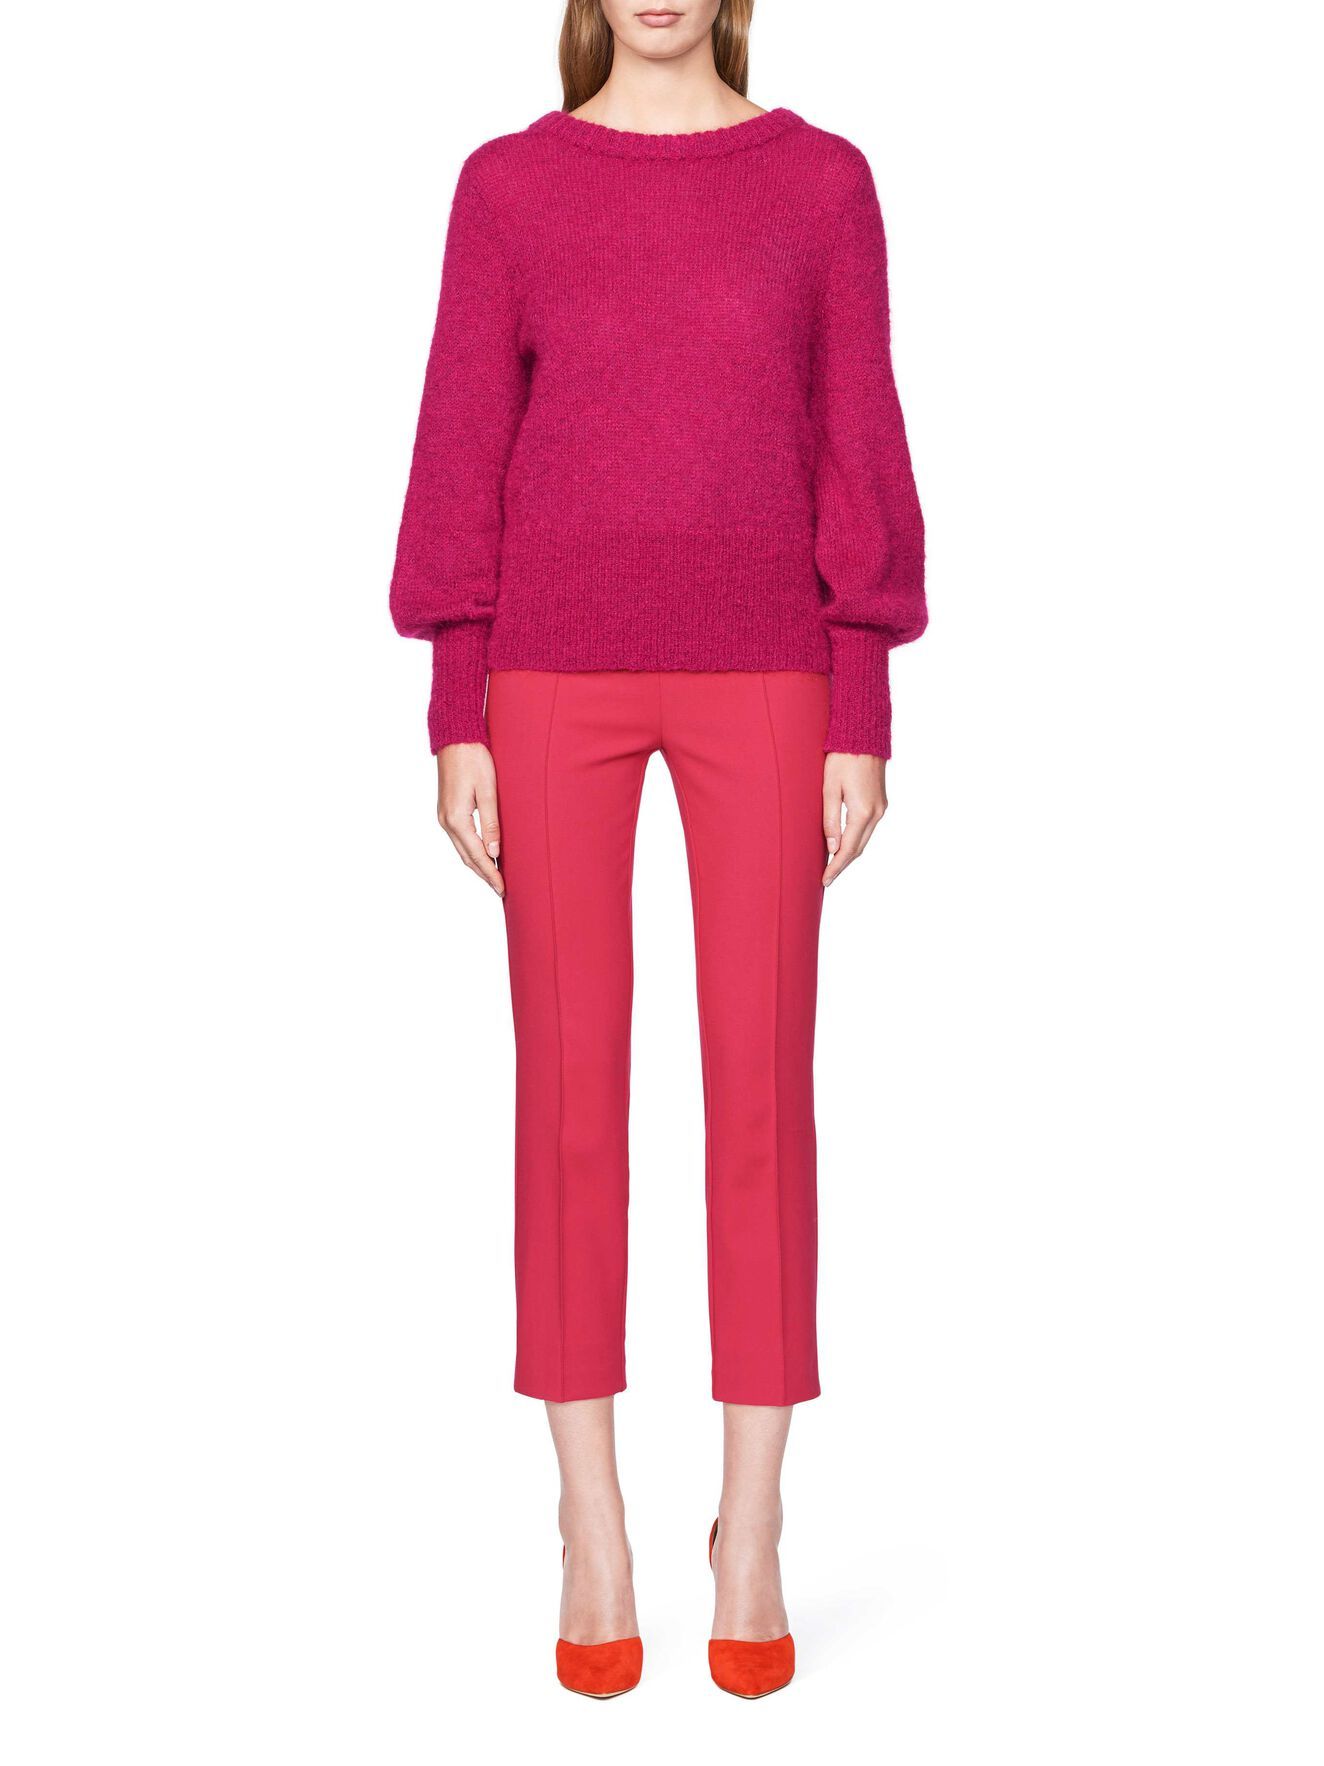 CHAIL PULLOVER in Dark Cerise from Tiger of Sweden